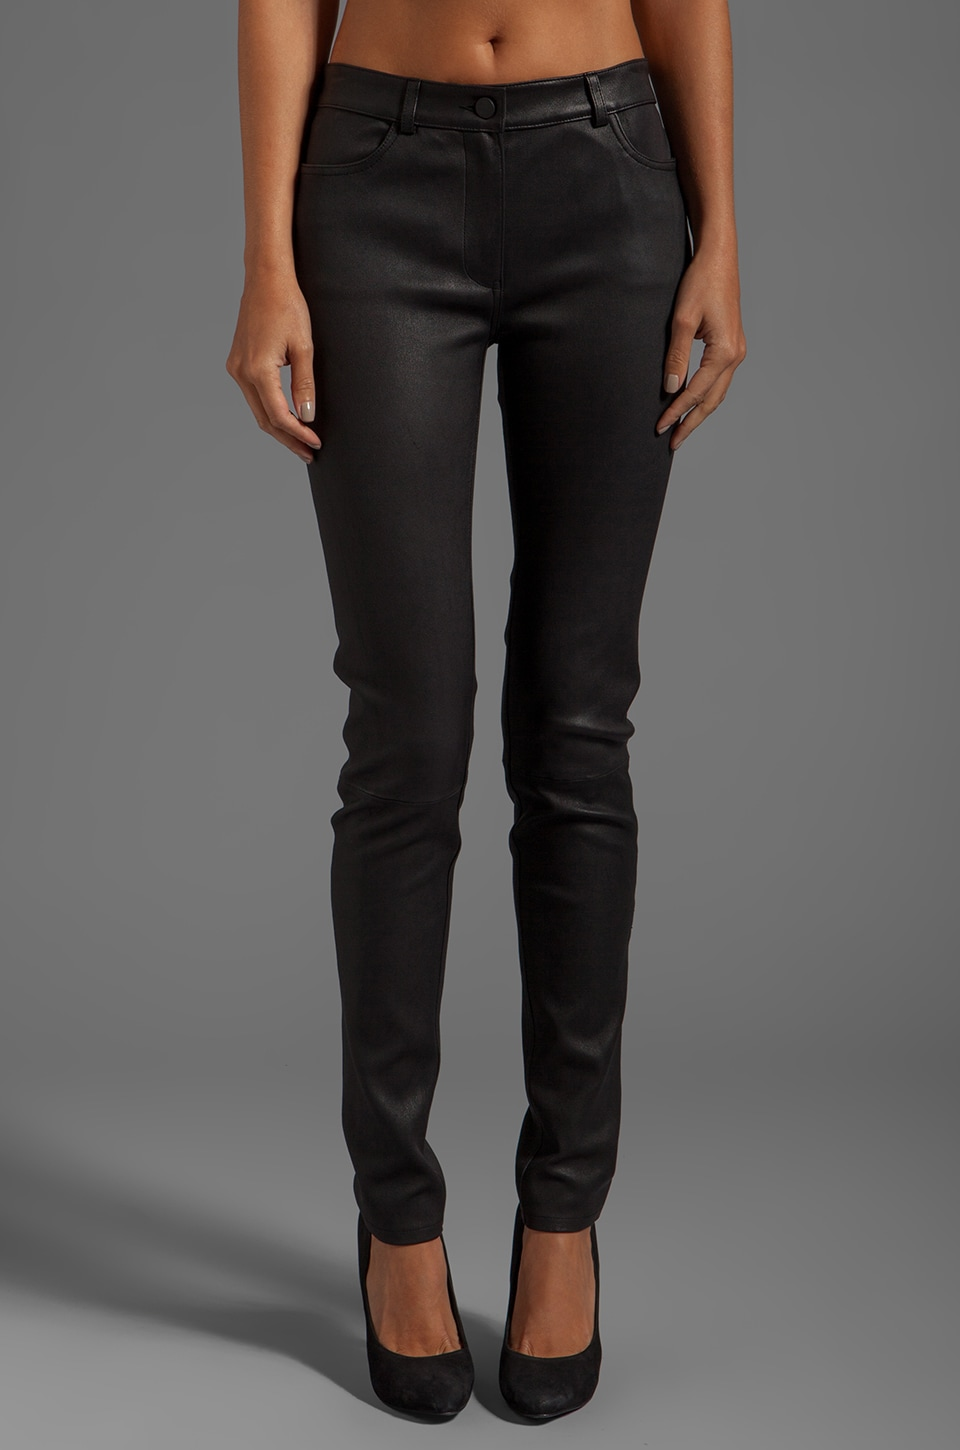 T by Alexander Wang Stretch Leather Jeans in Black